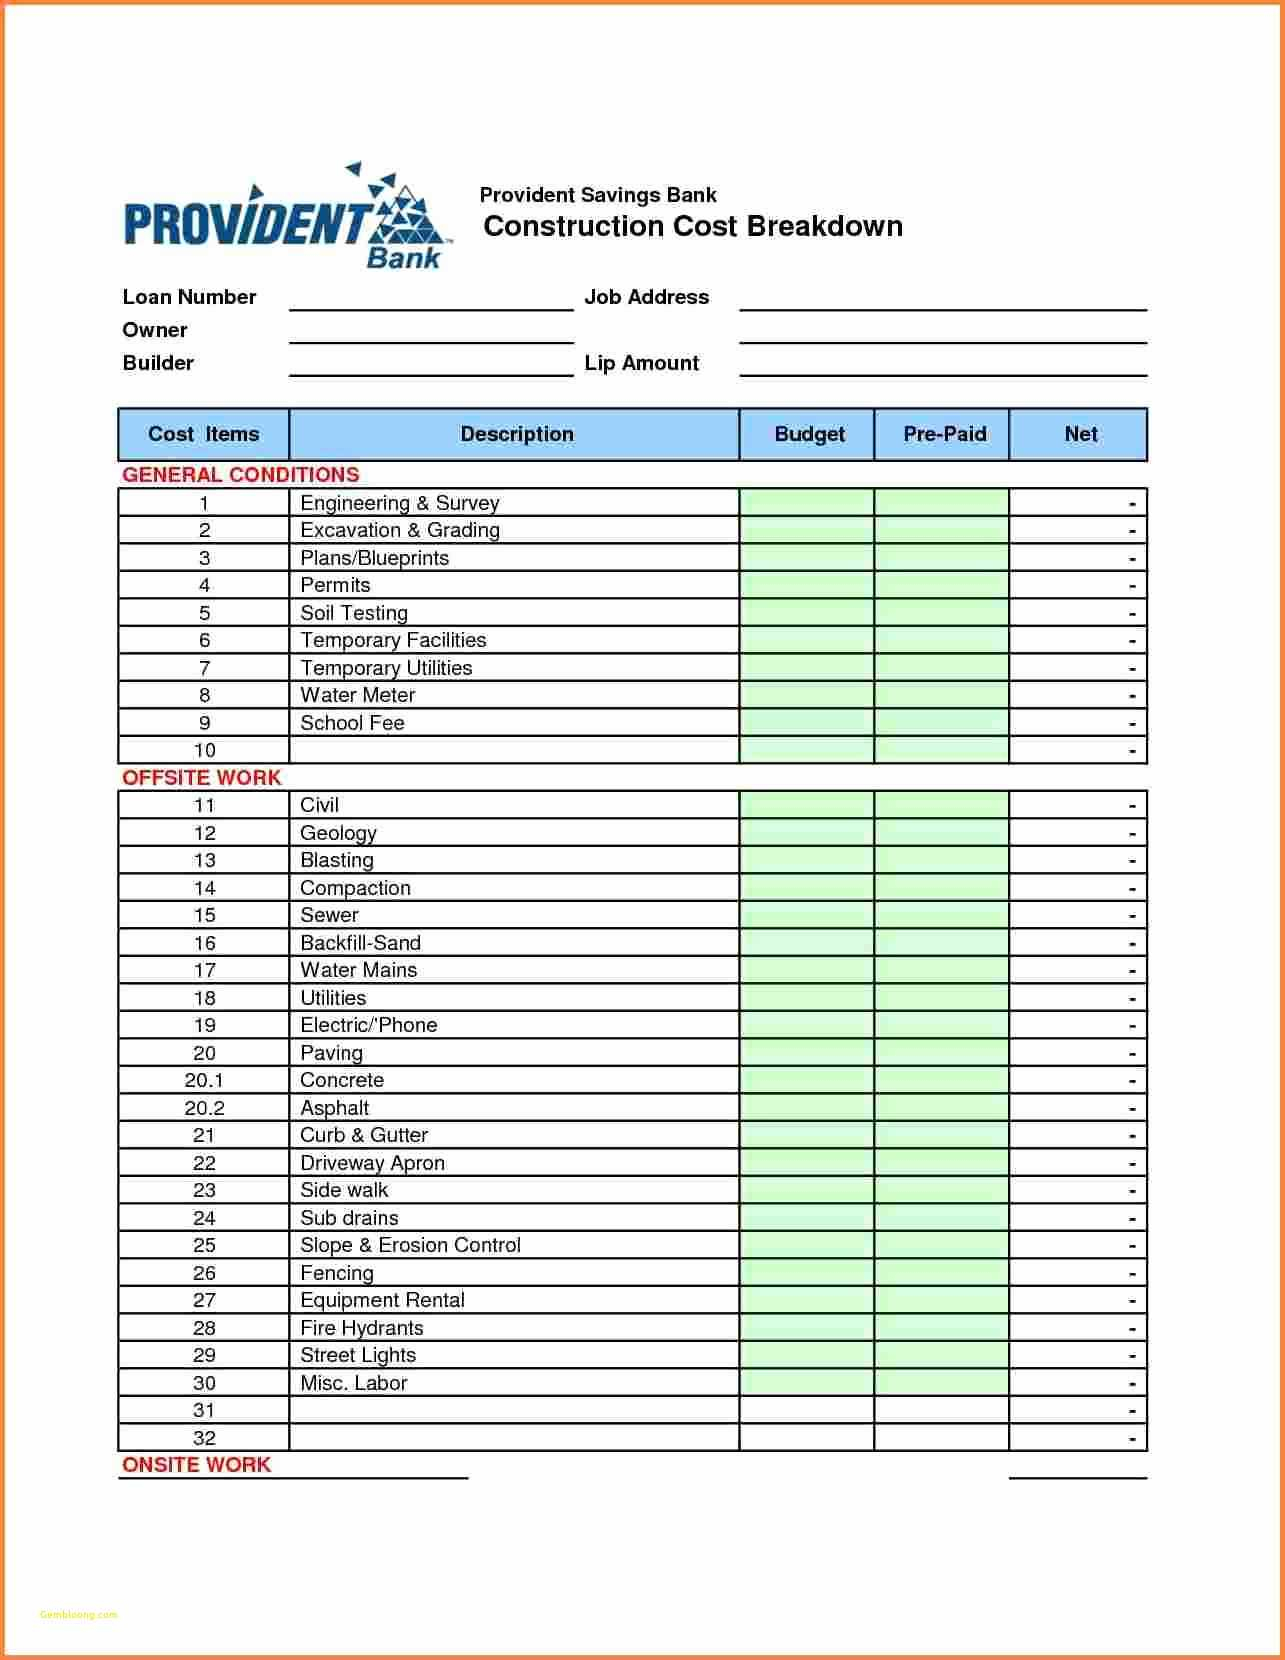 Construction Cost Breakdown Spreadsheet With New Home Construction Cost Breakdown Spreadsheet  Awal Mula